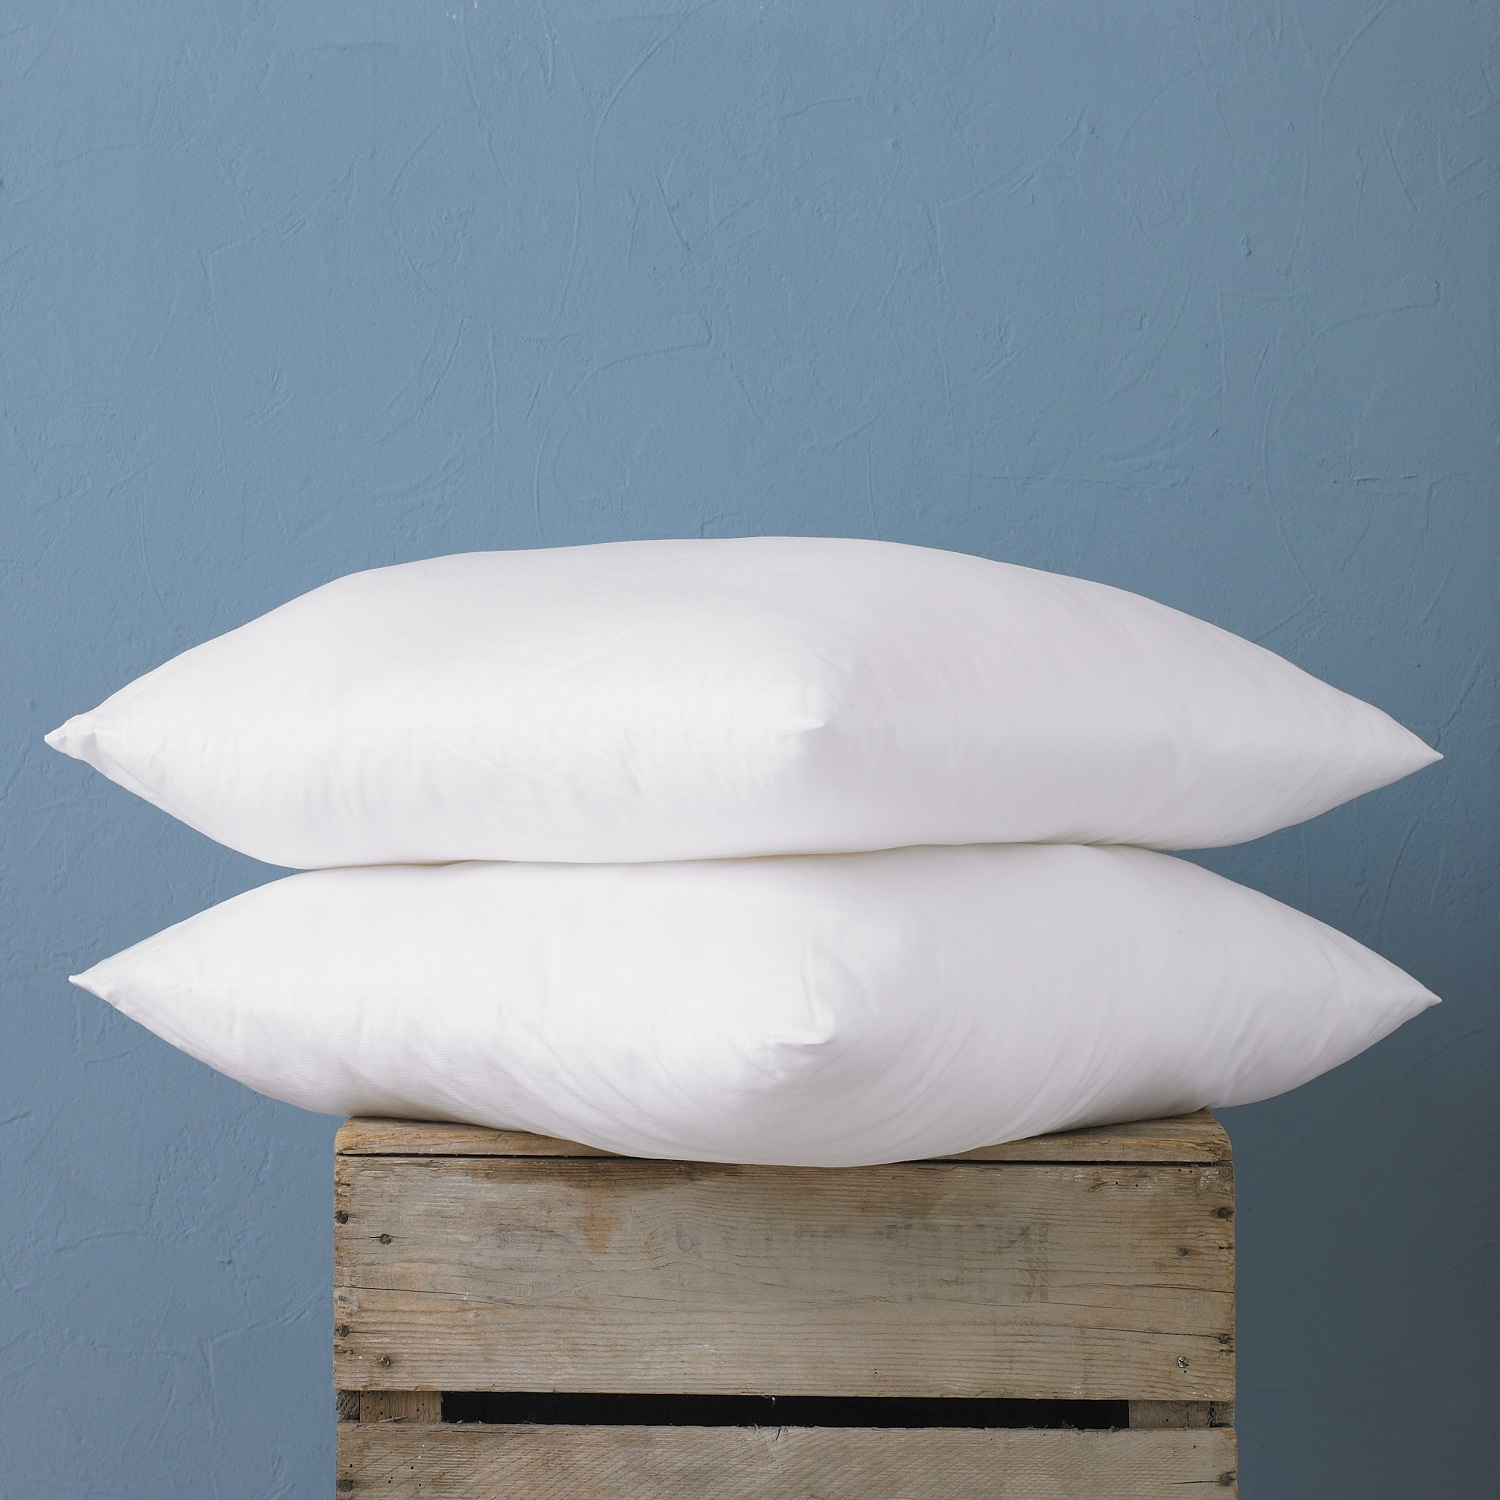 Square_pillows_1500.jpg